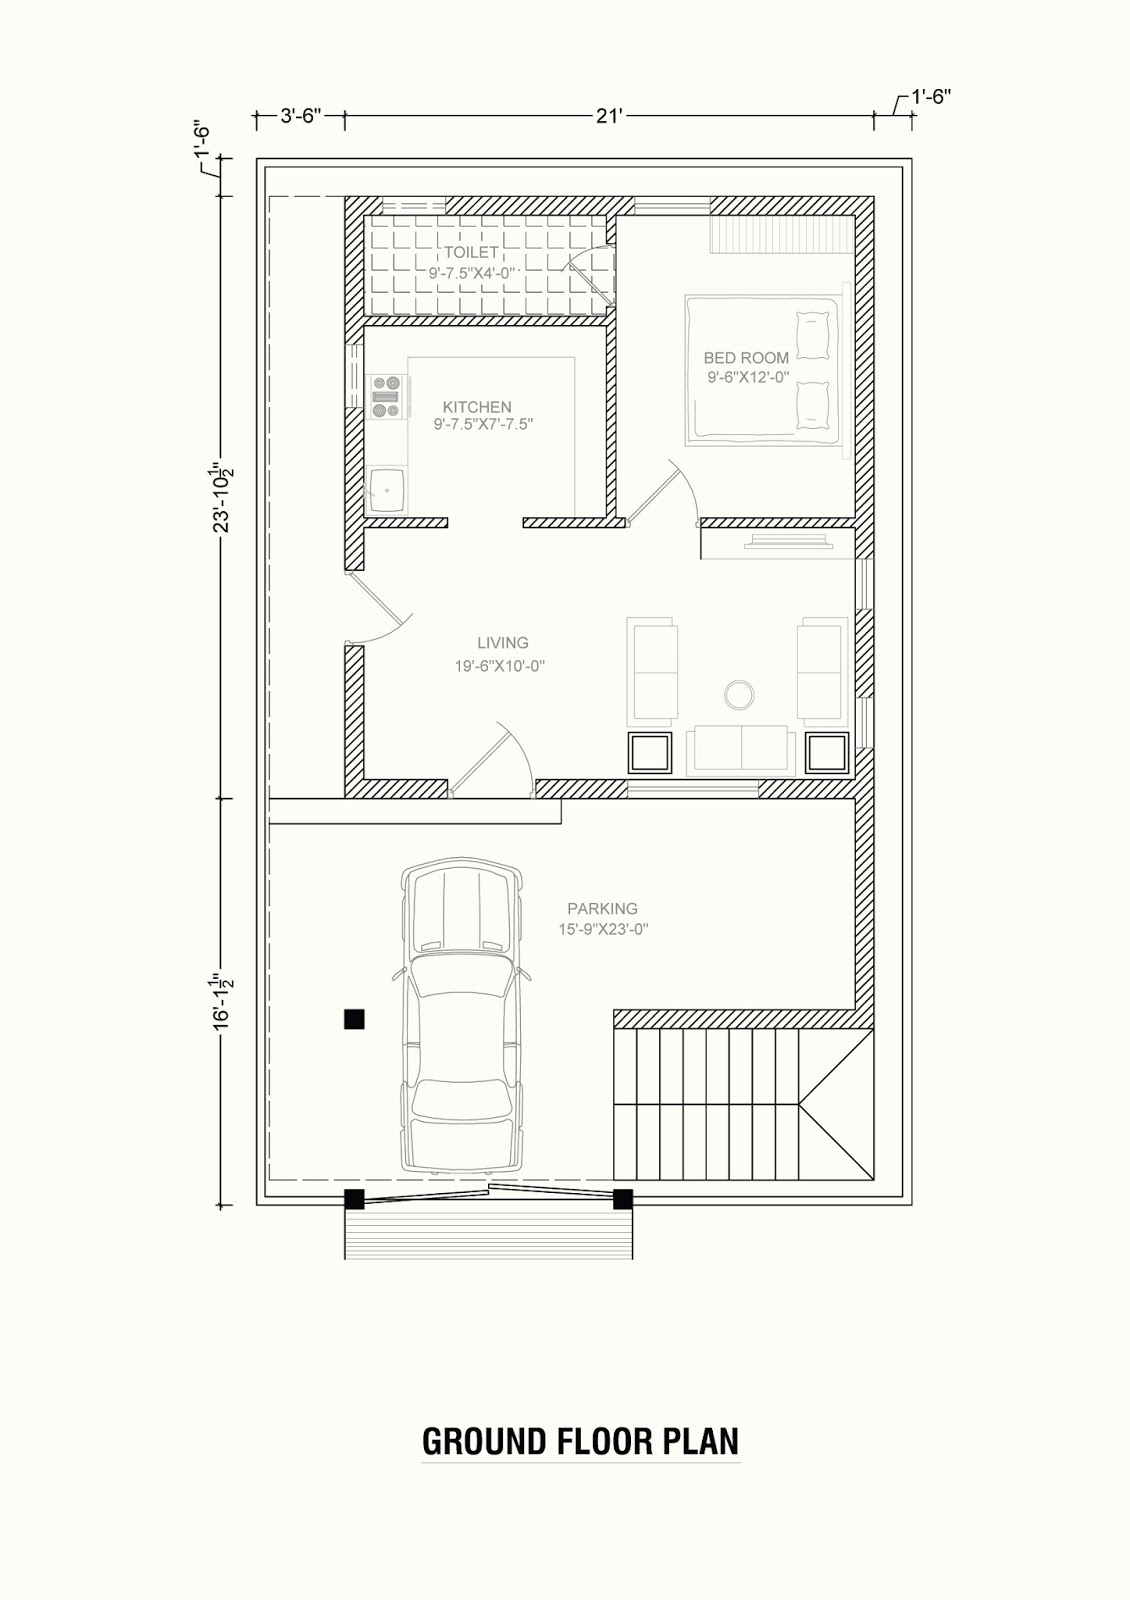 Beautiful This Plan Showing North Face Plan Ground And First Second Floor Plans And  Also Interior Concept Layout View And Give Me Your Comments If Any Quotation  Send ...